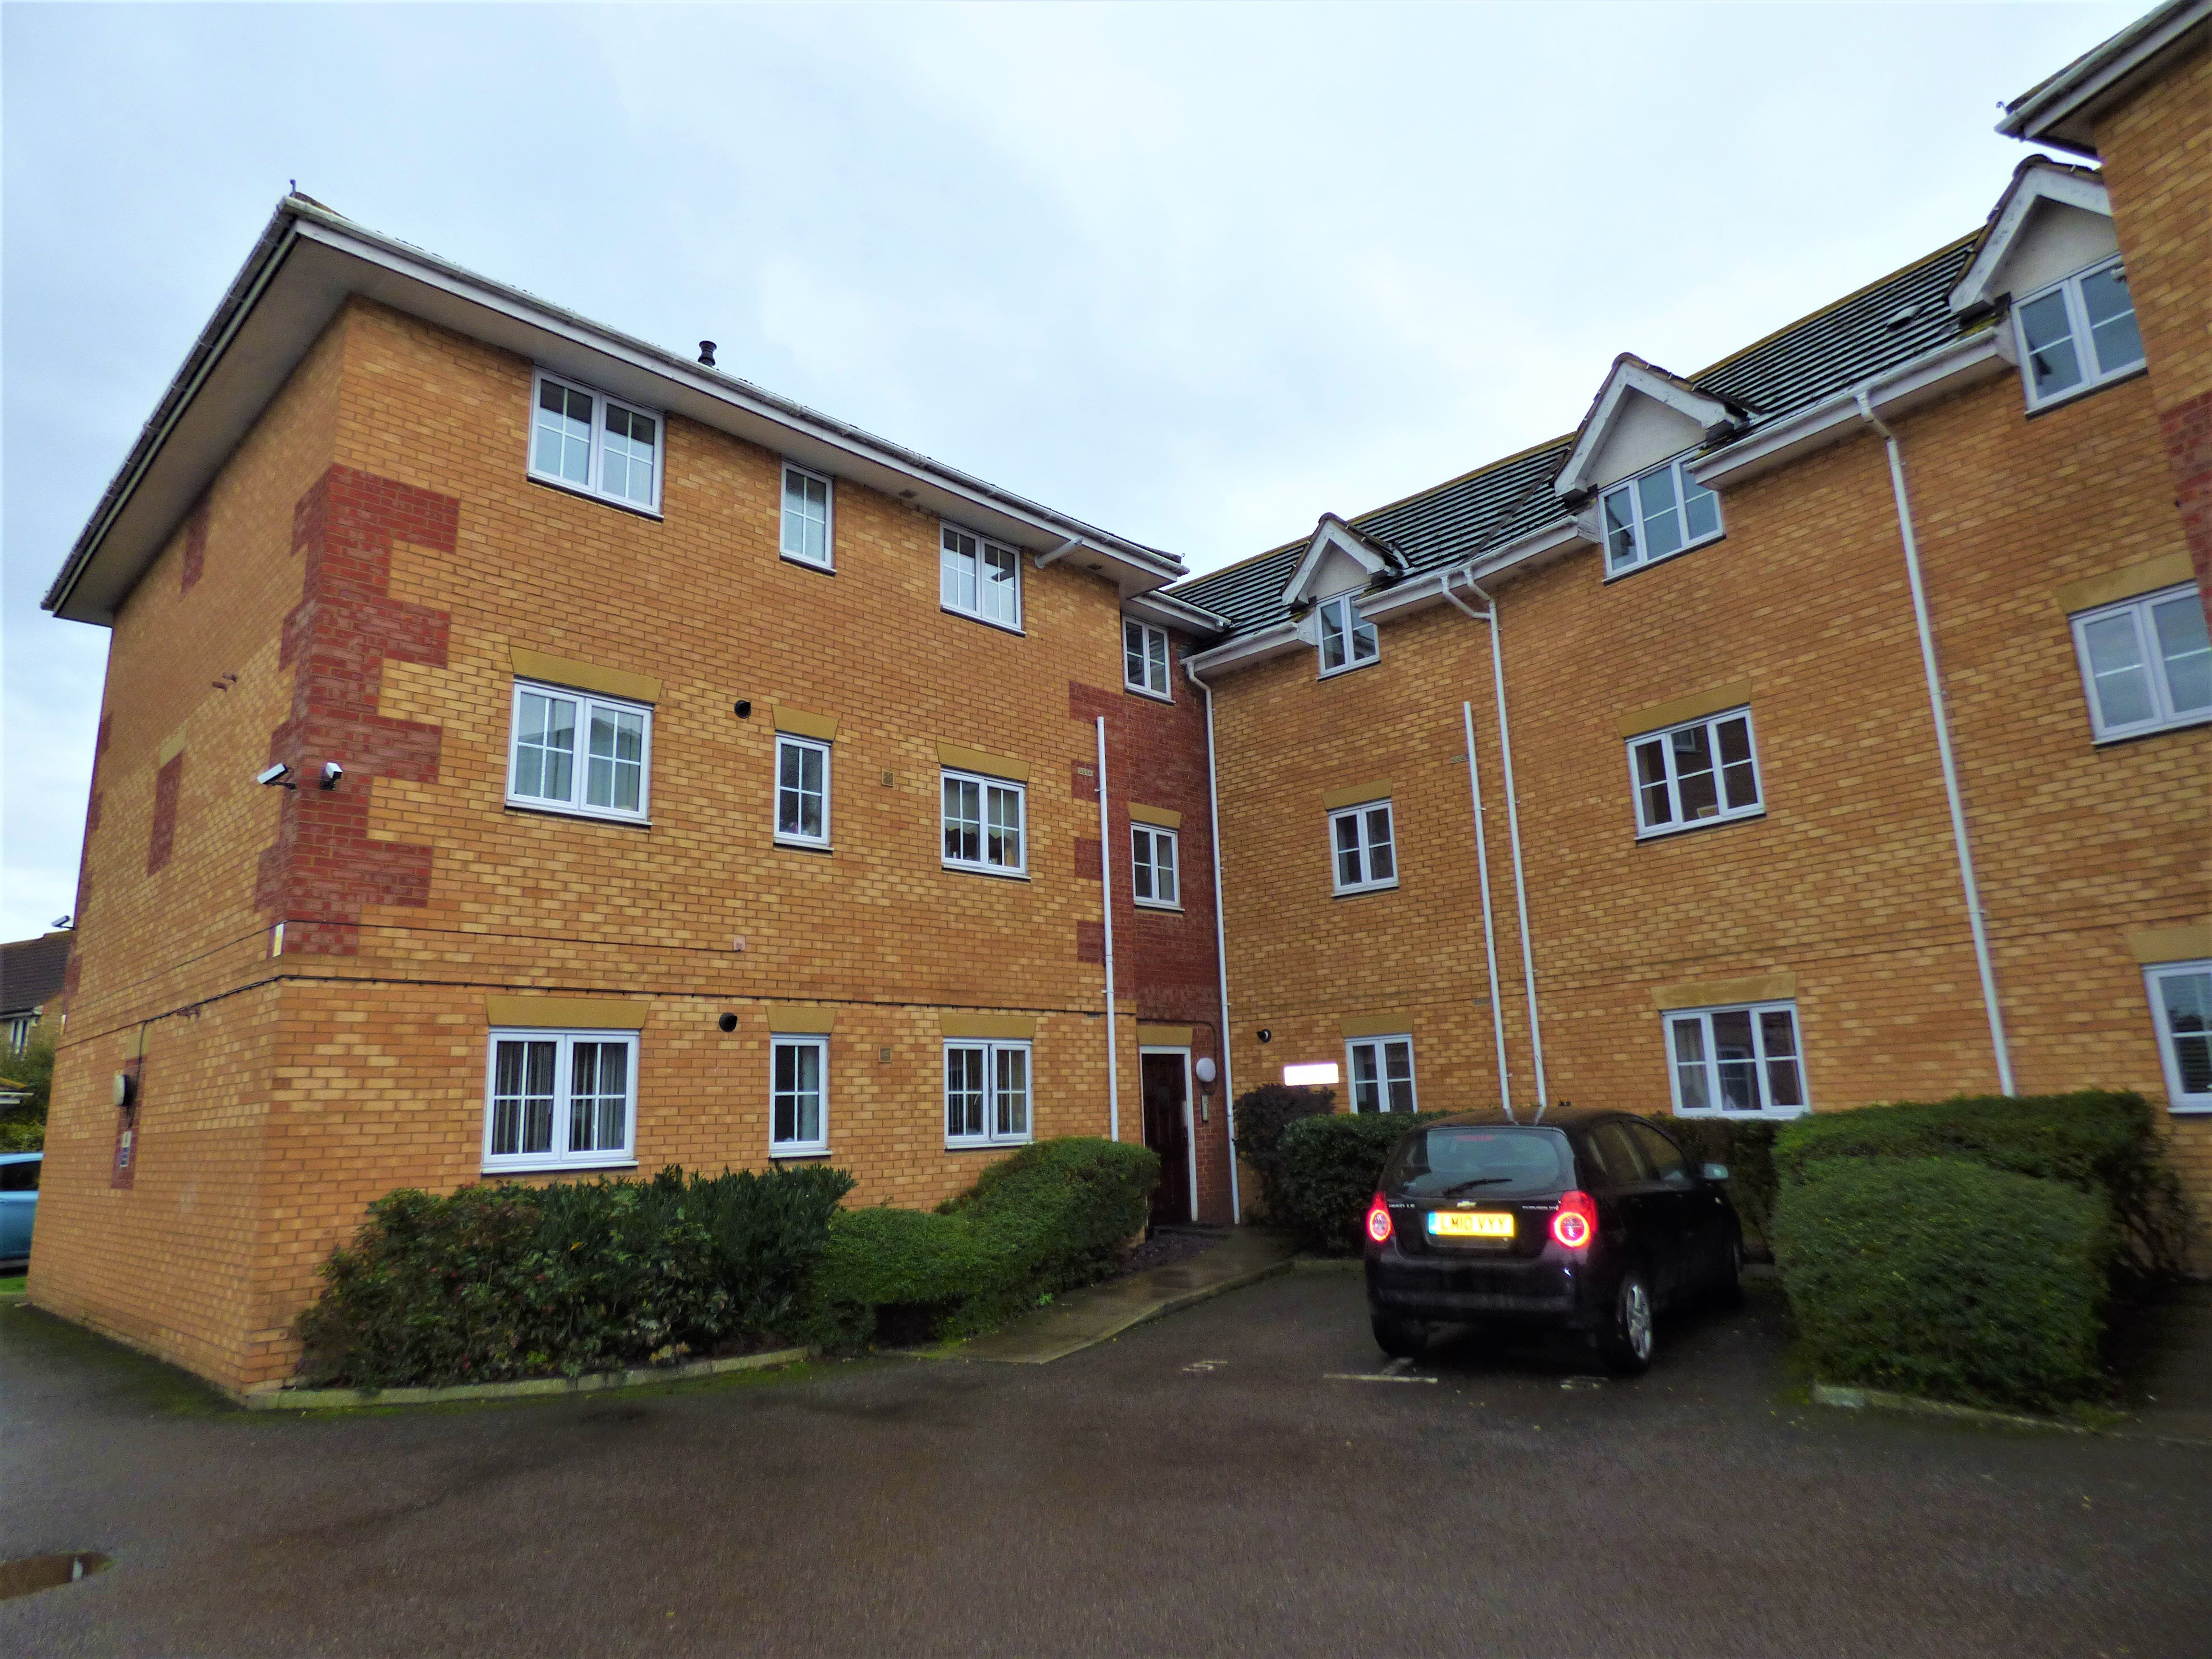 2 bed flat to rent in Pepys Court, Wickford - Property Image 1